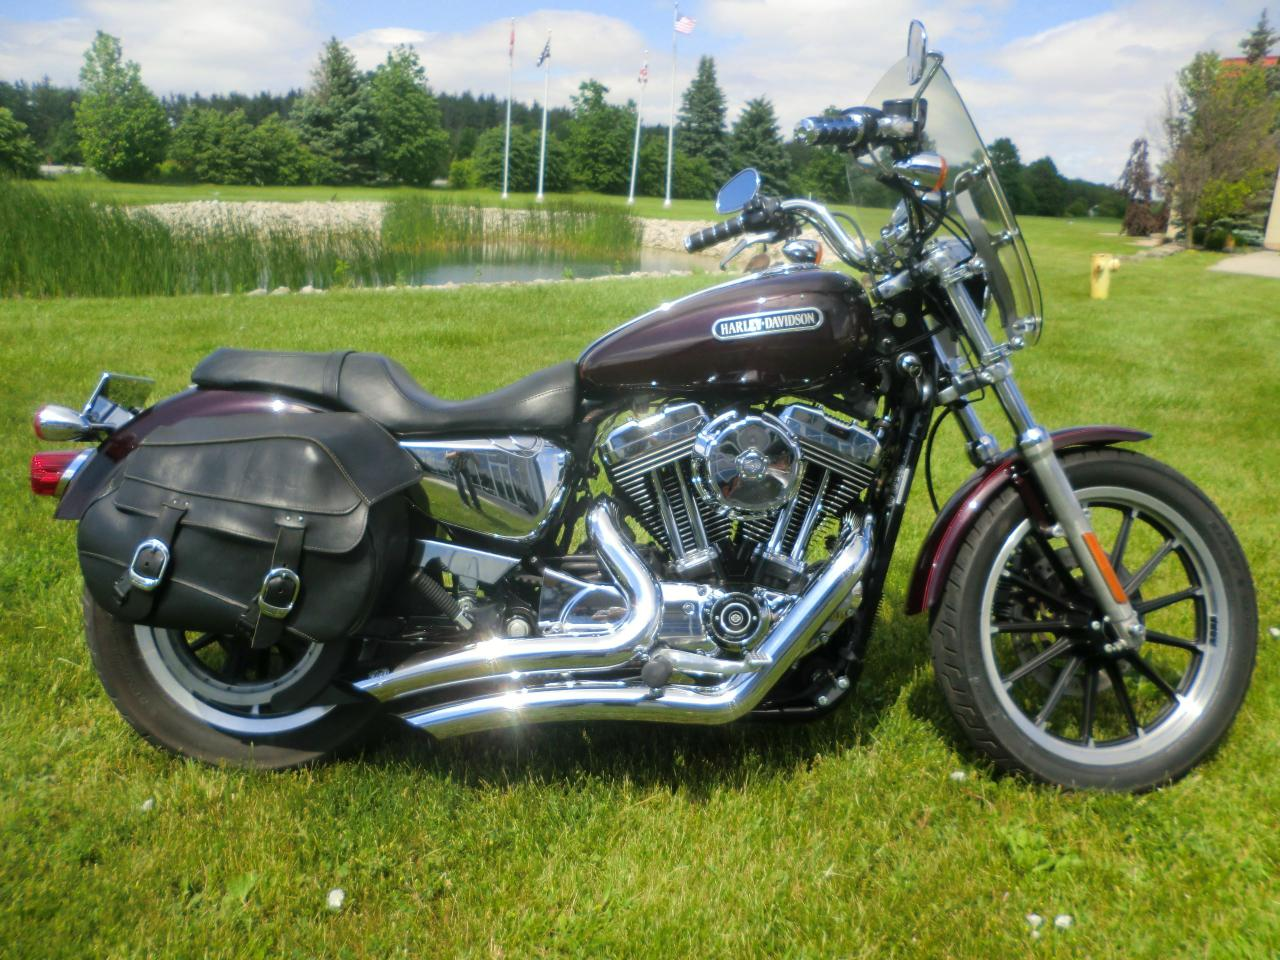 hight resolution of used 2007 harley davidson sportster 1200 for sale in blenheim ontario carpages ca